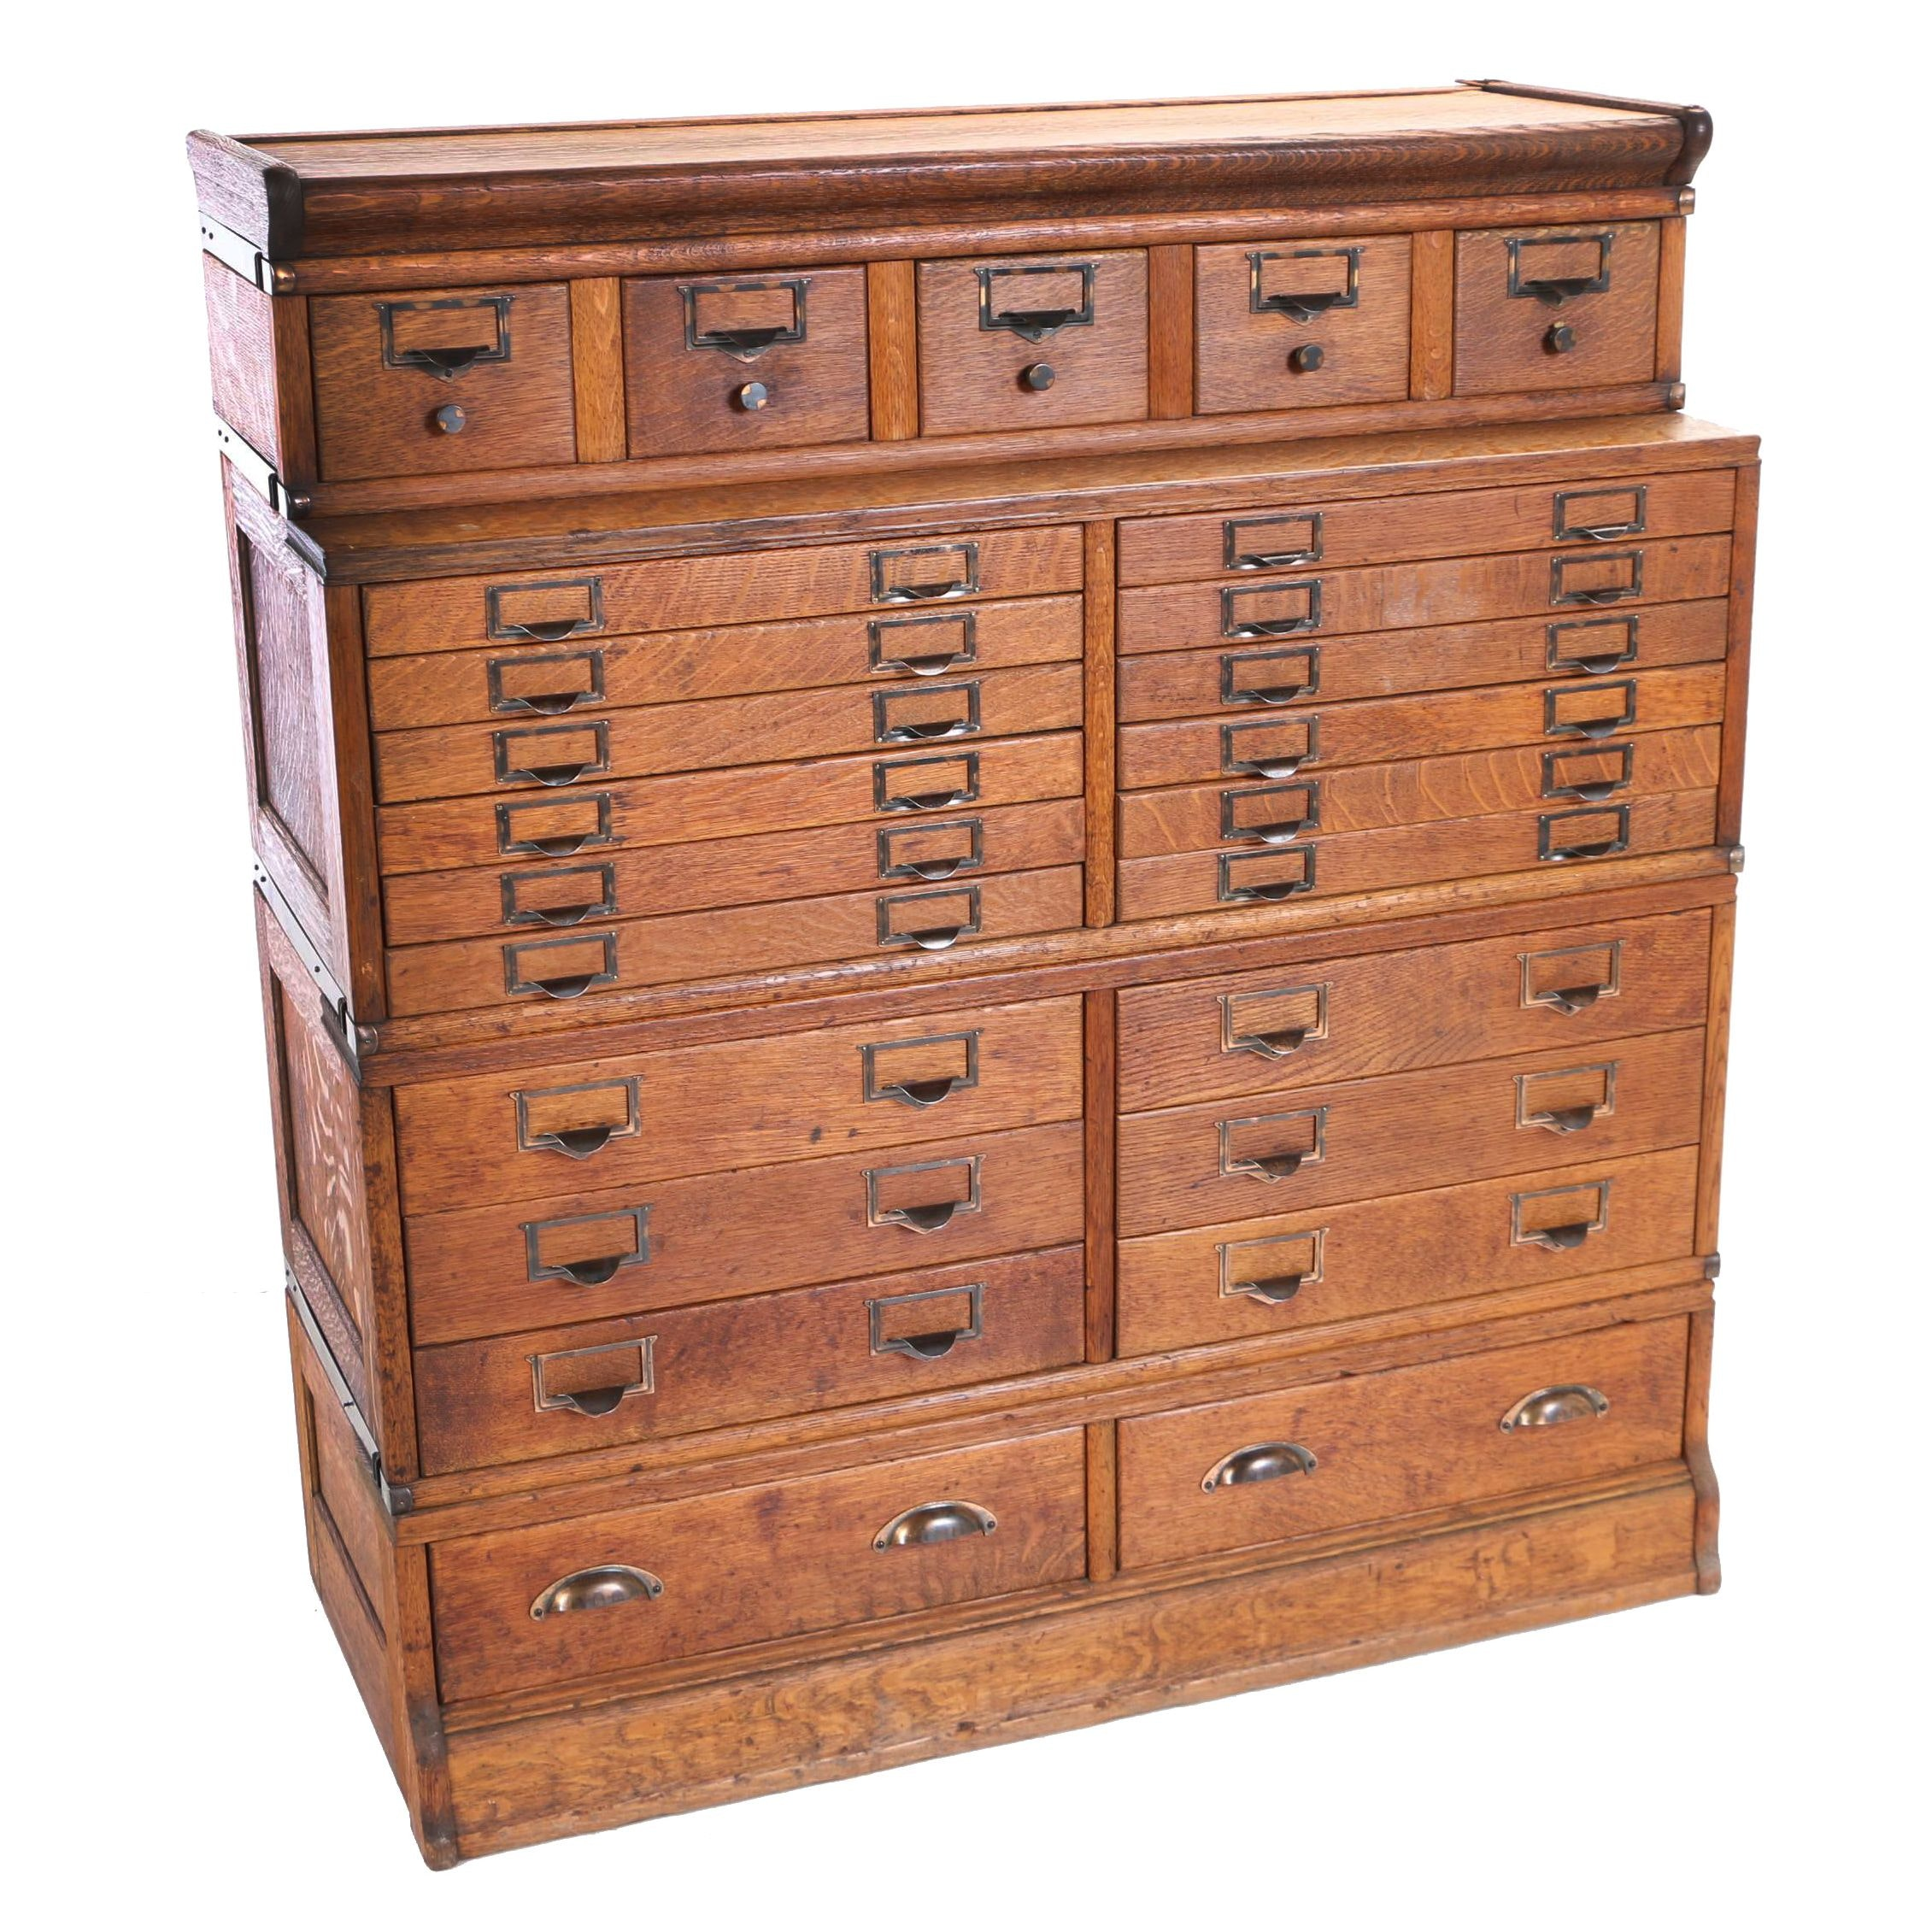 Oak Four-Section Stacking File Cabinet, Early 20th Century